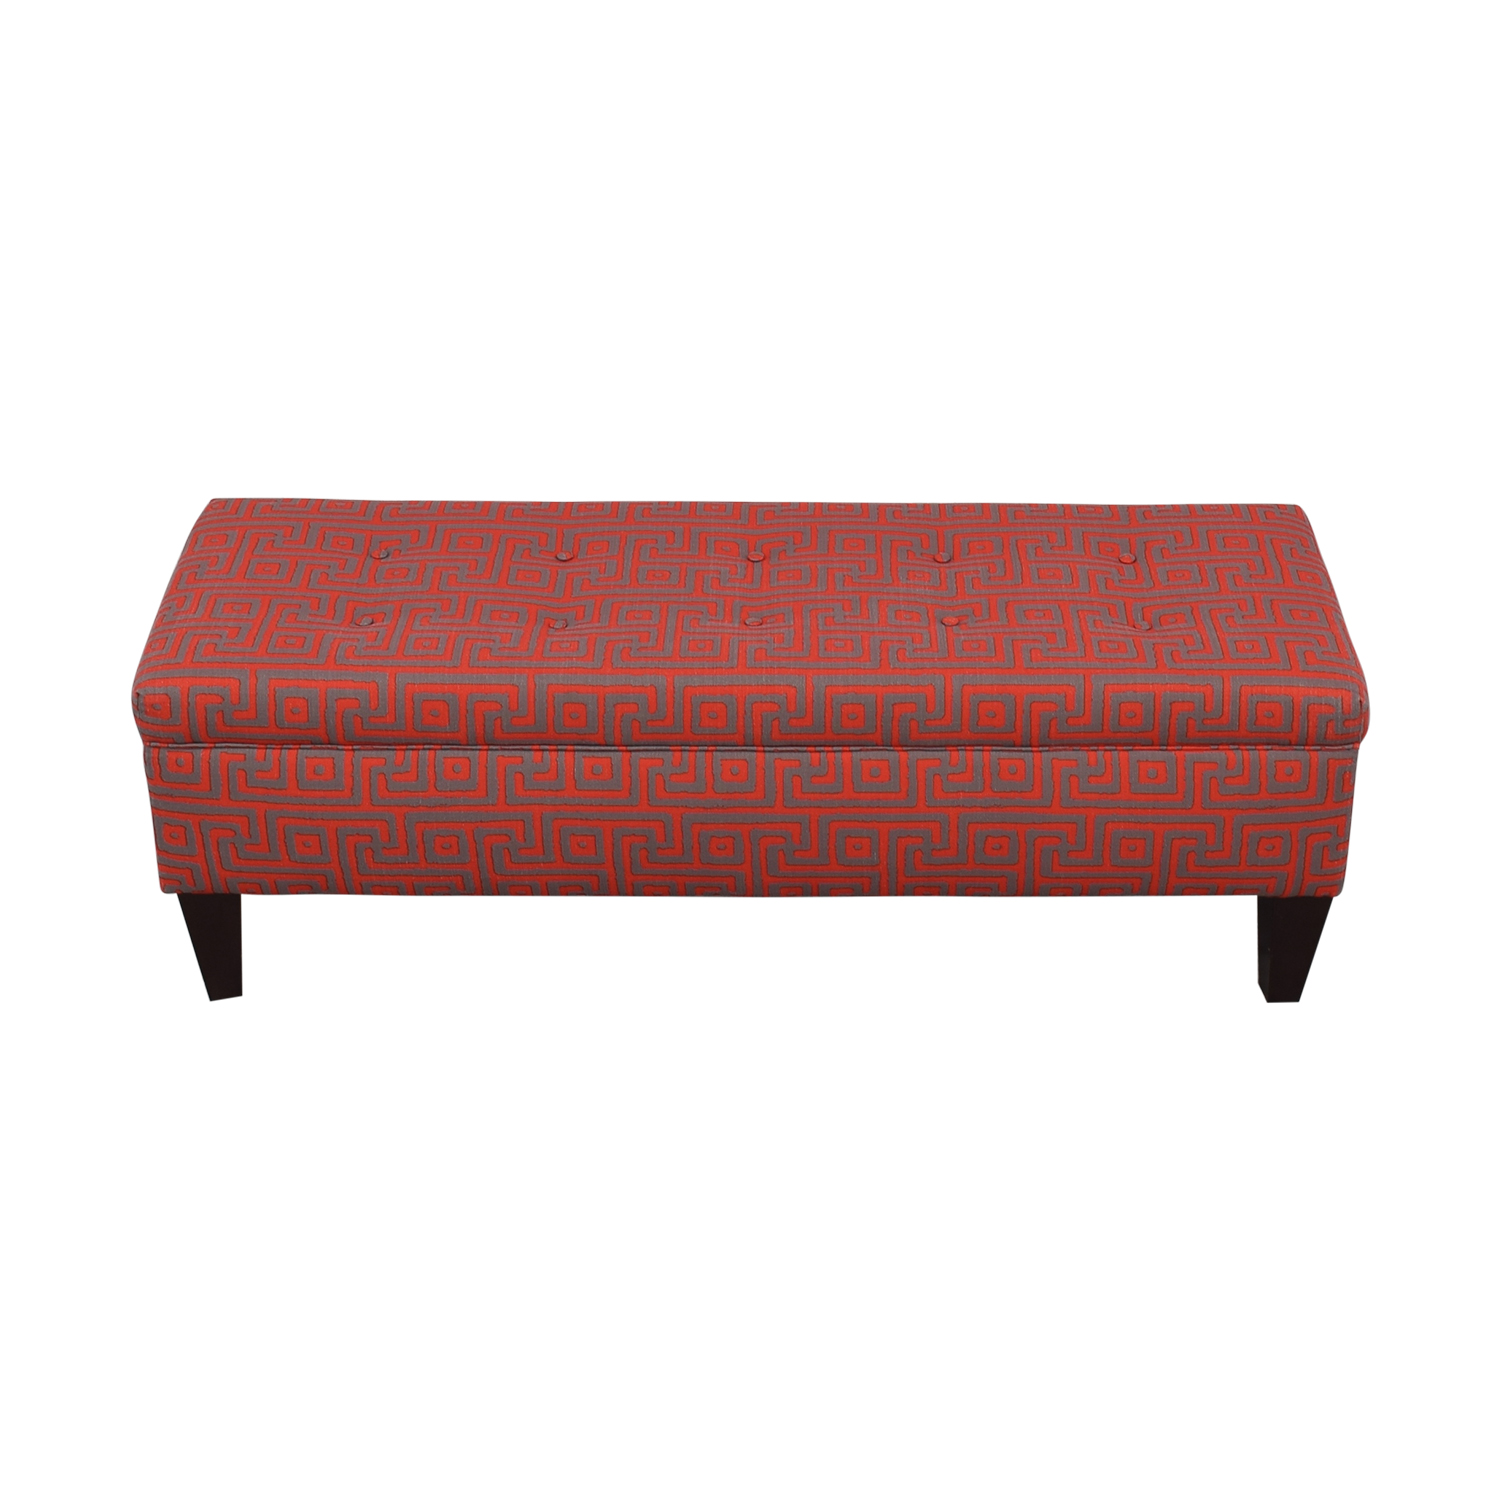 Sole Designs Brooke Red Upholstered Storage Bench / Trunks